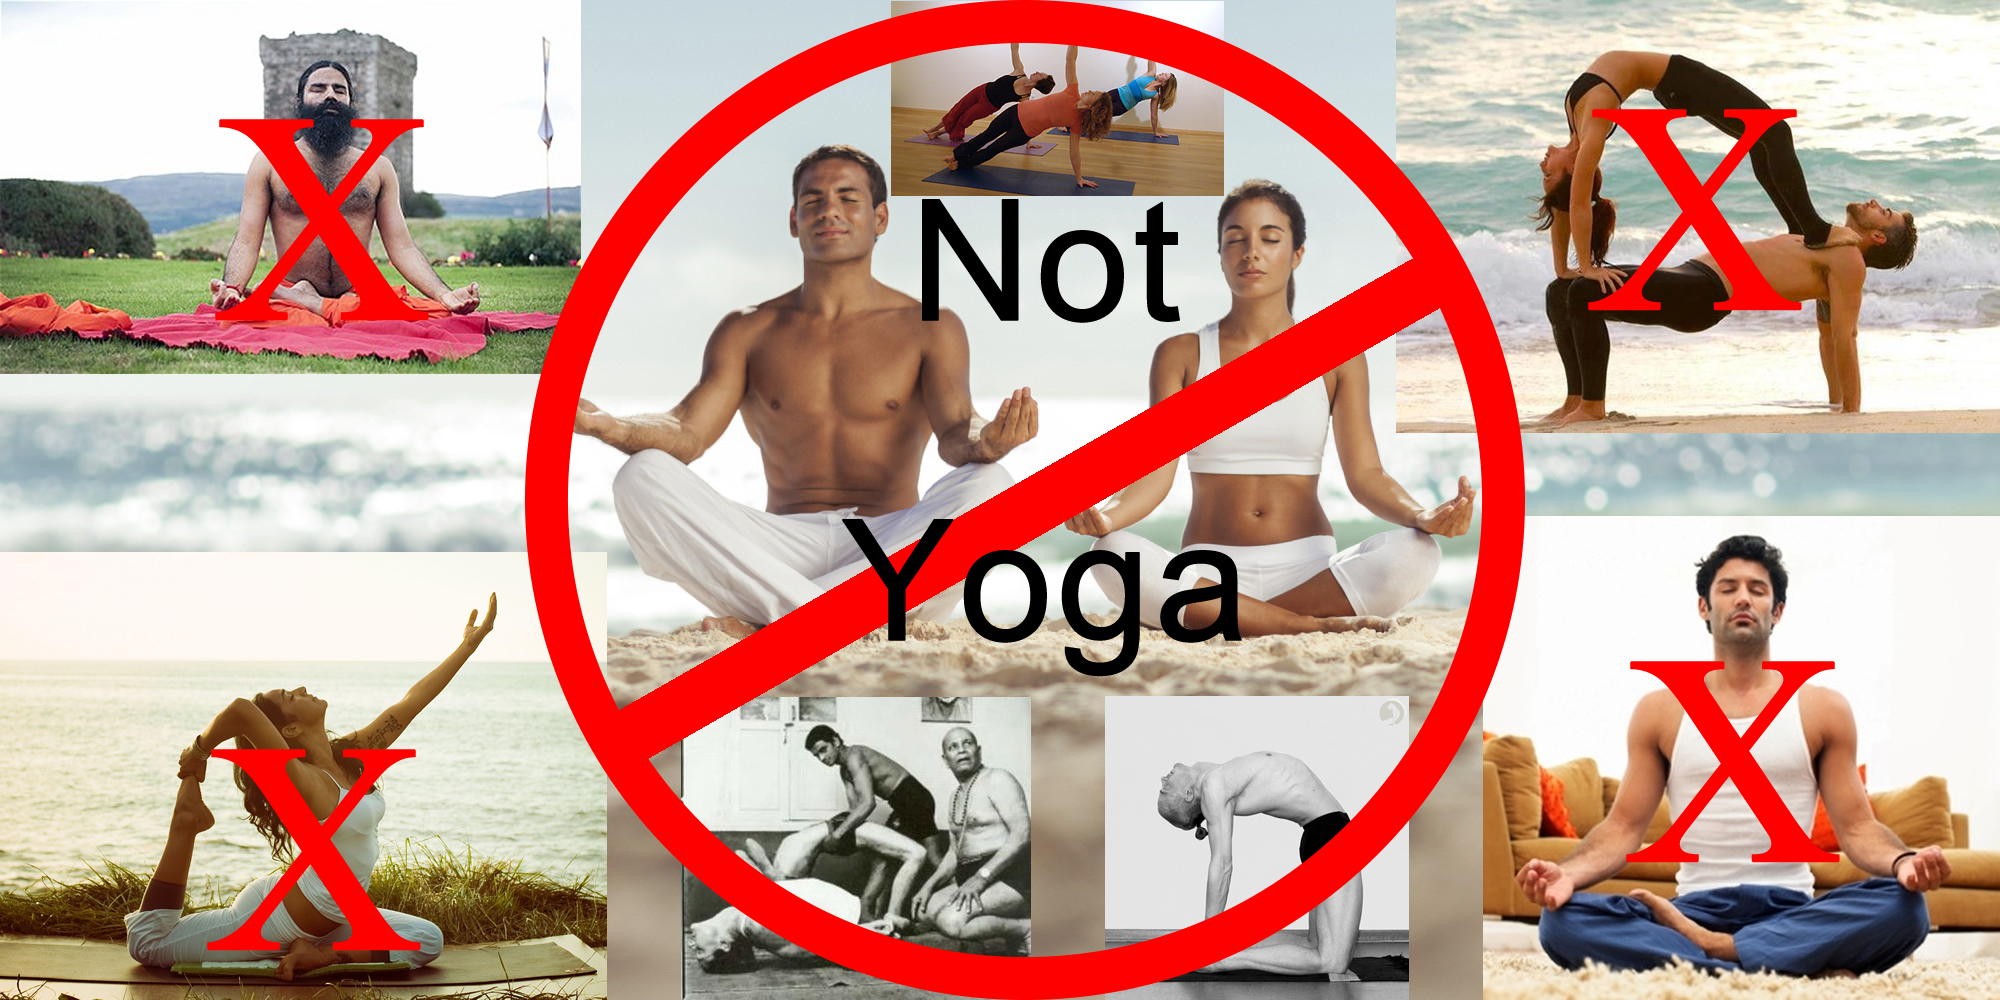 That's Not Yoga